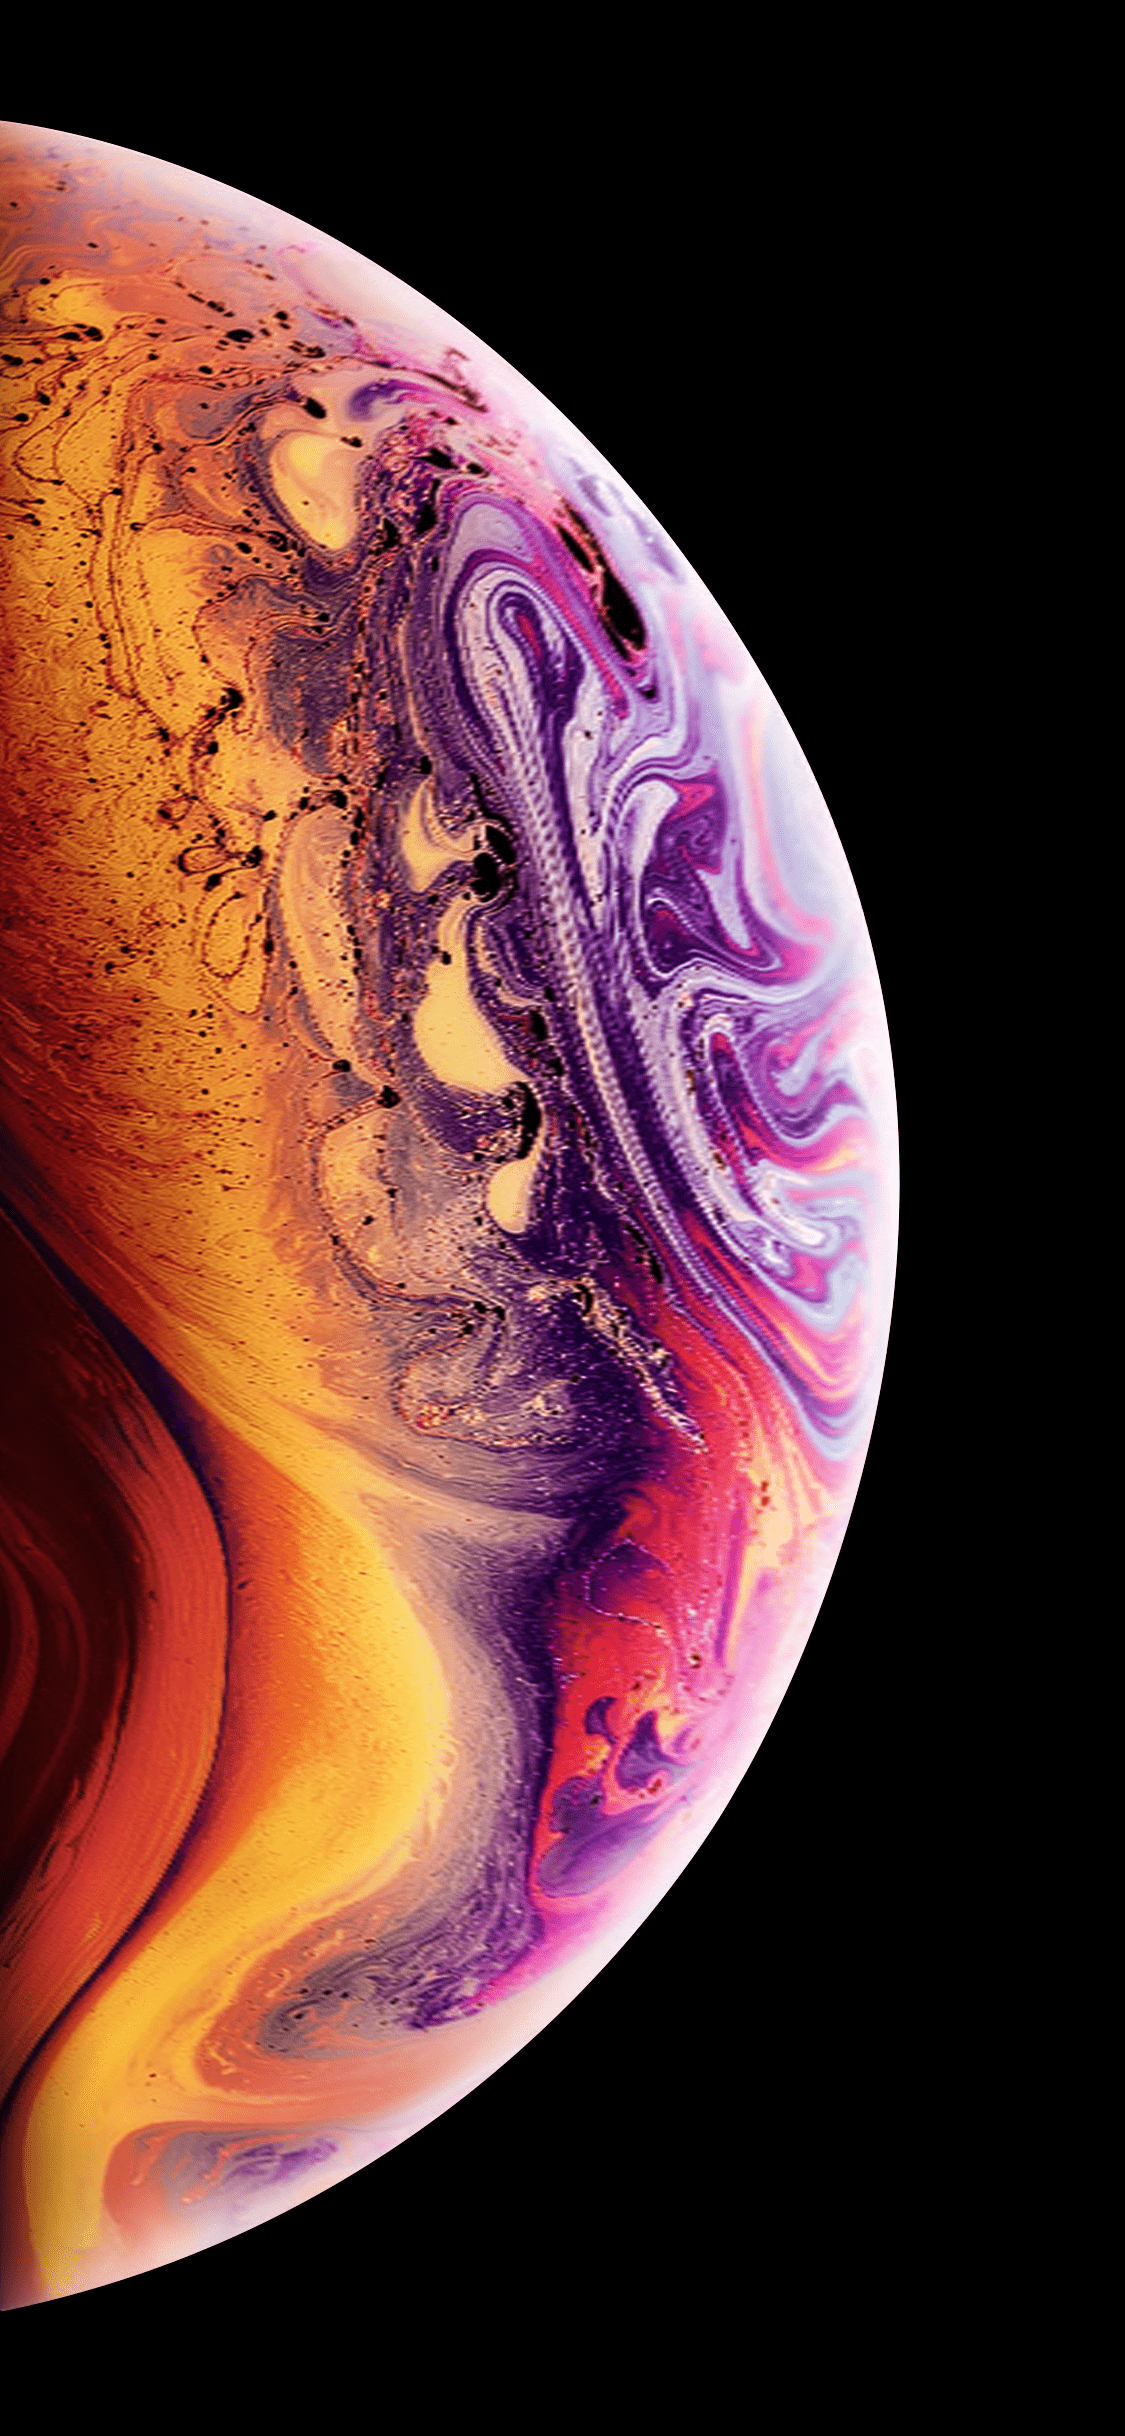 Download iPhone XS Wallpapers 2